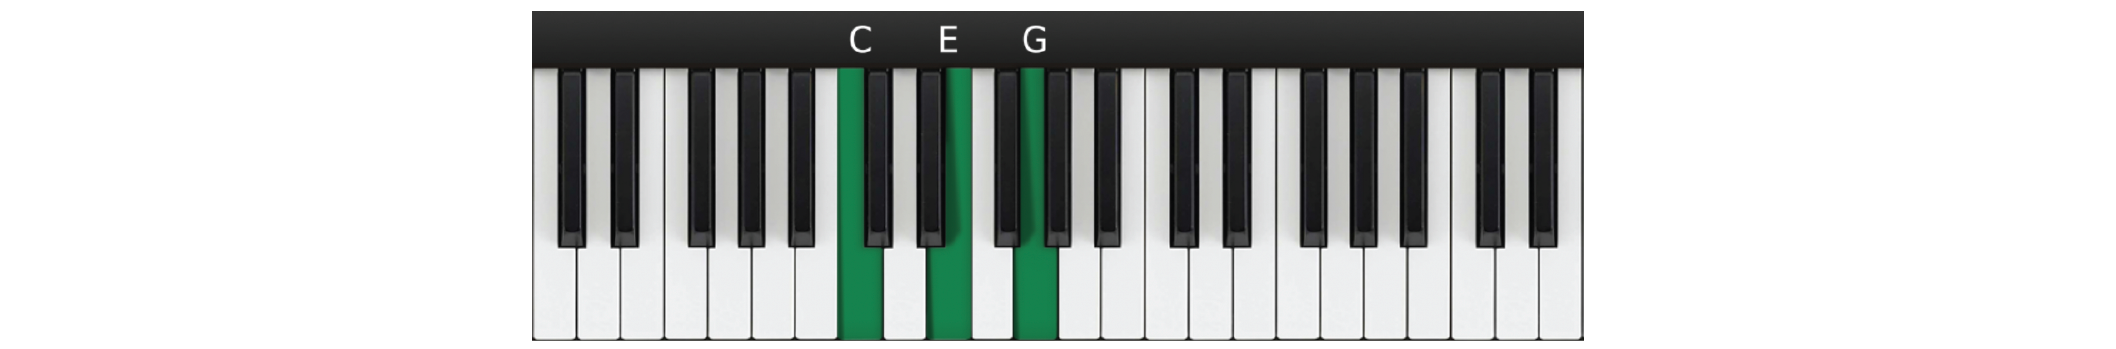 C Major root position